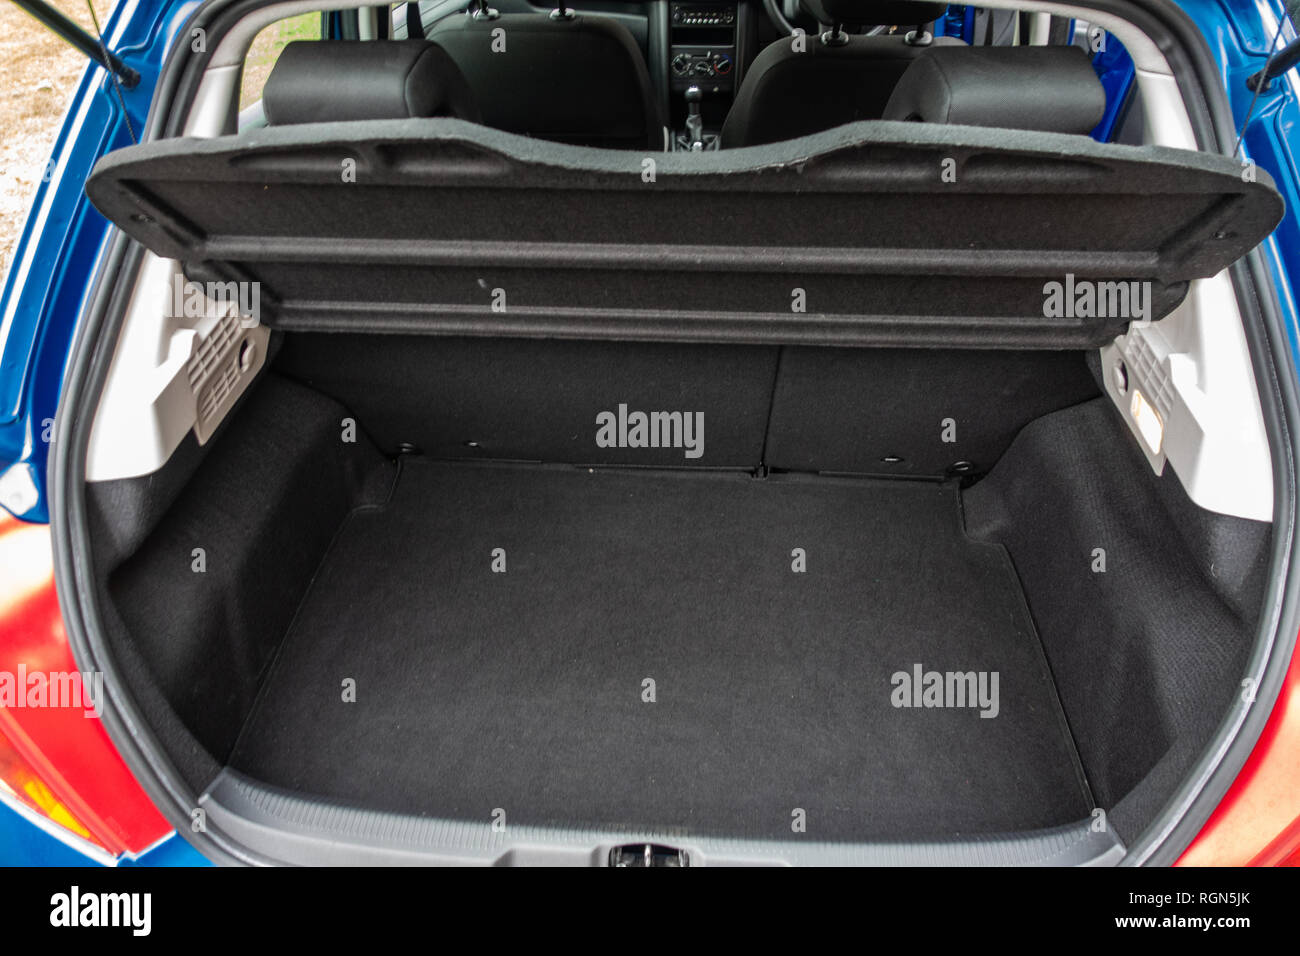 Empty space in the boot space of  a Peugeot 207 5 door 2009 car in England - Stock Image